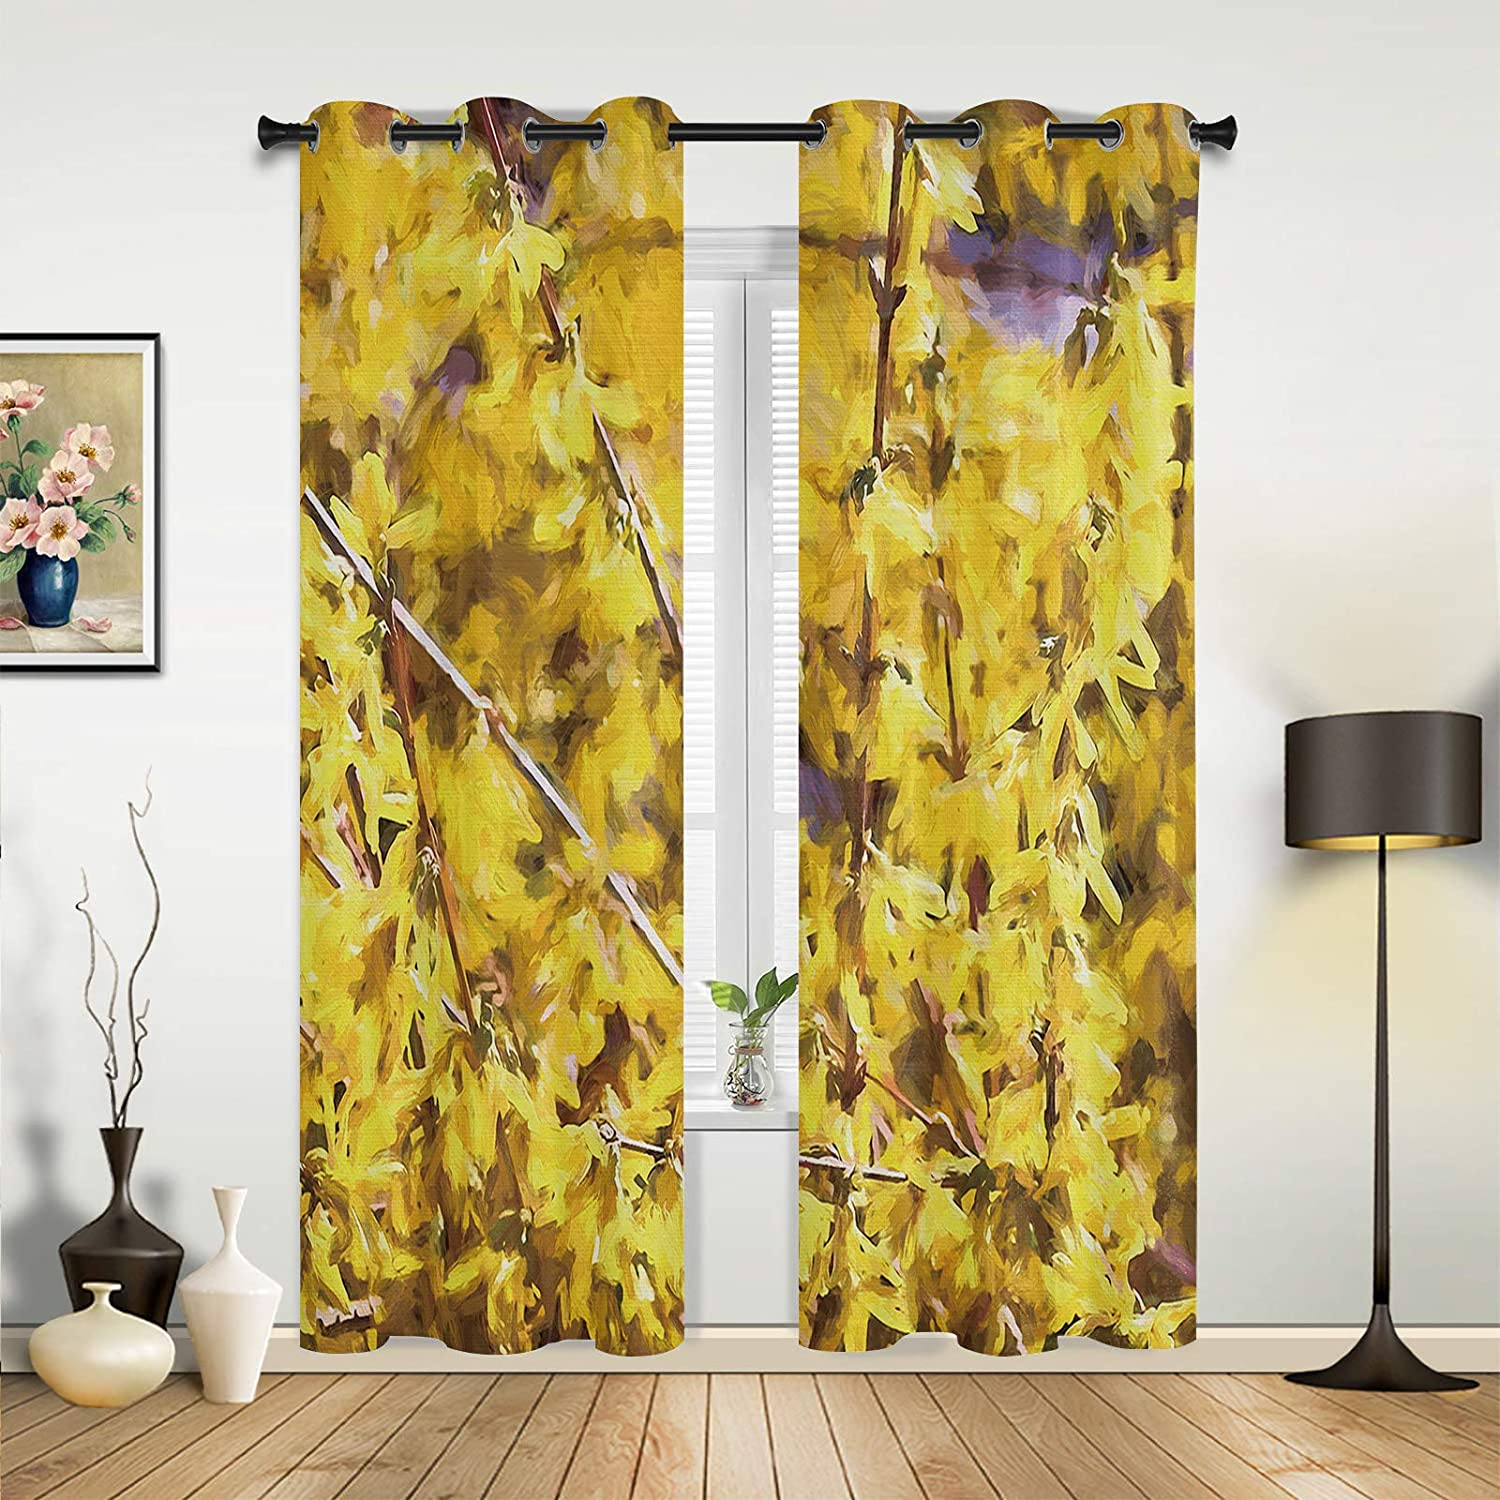 Window Curtains Drapes Panels Tulsa Mall Over item handling ☆ Spring Small Flower Yellow Bright